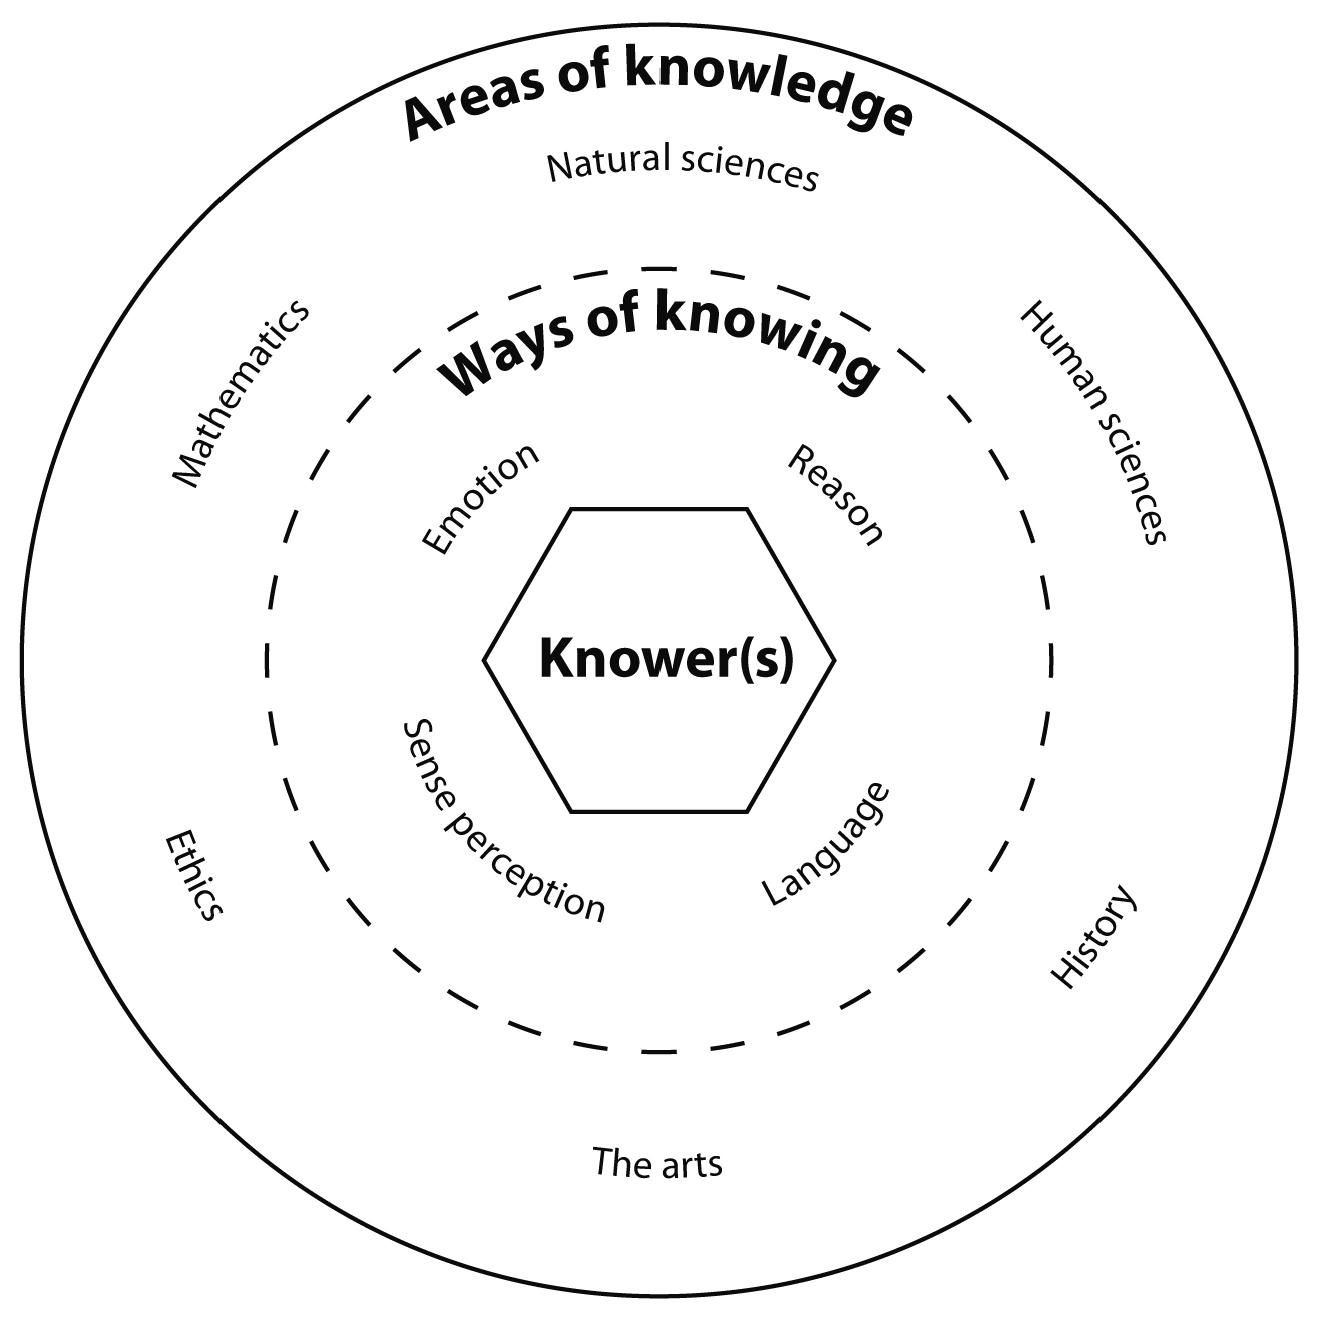 (cover photo) This circle diagram represents the different